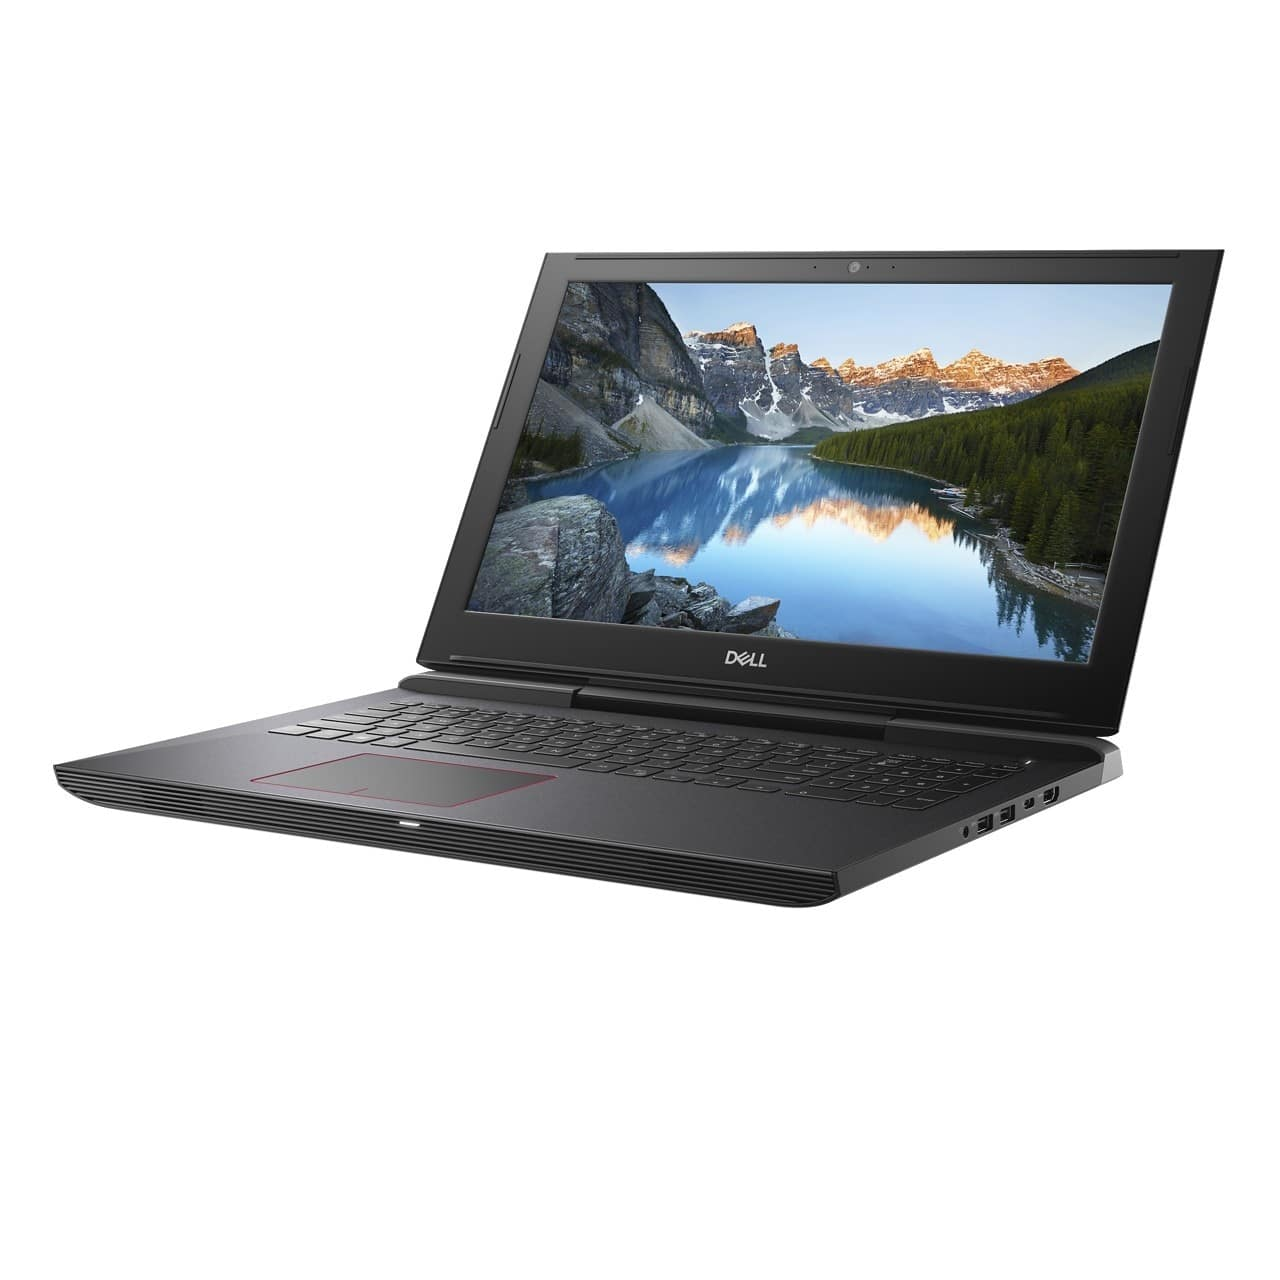 Dell Outlet Dell Inspiron 15 - 7577 i5-7300HQ + 256GB PCIe M.2 + NVIDIA Geforce GTX 1060 6GB for $627 After $75 off coupon +  FREE Shipping